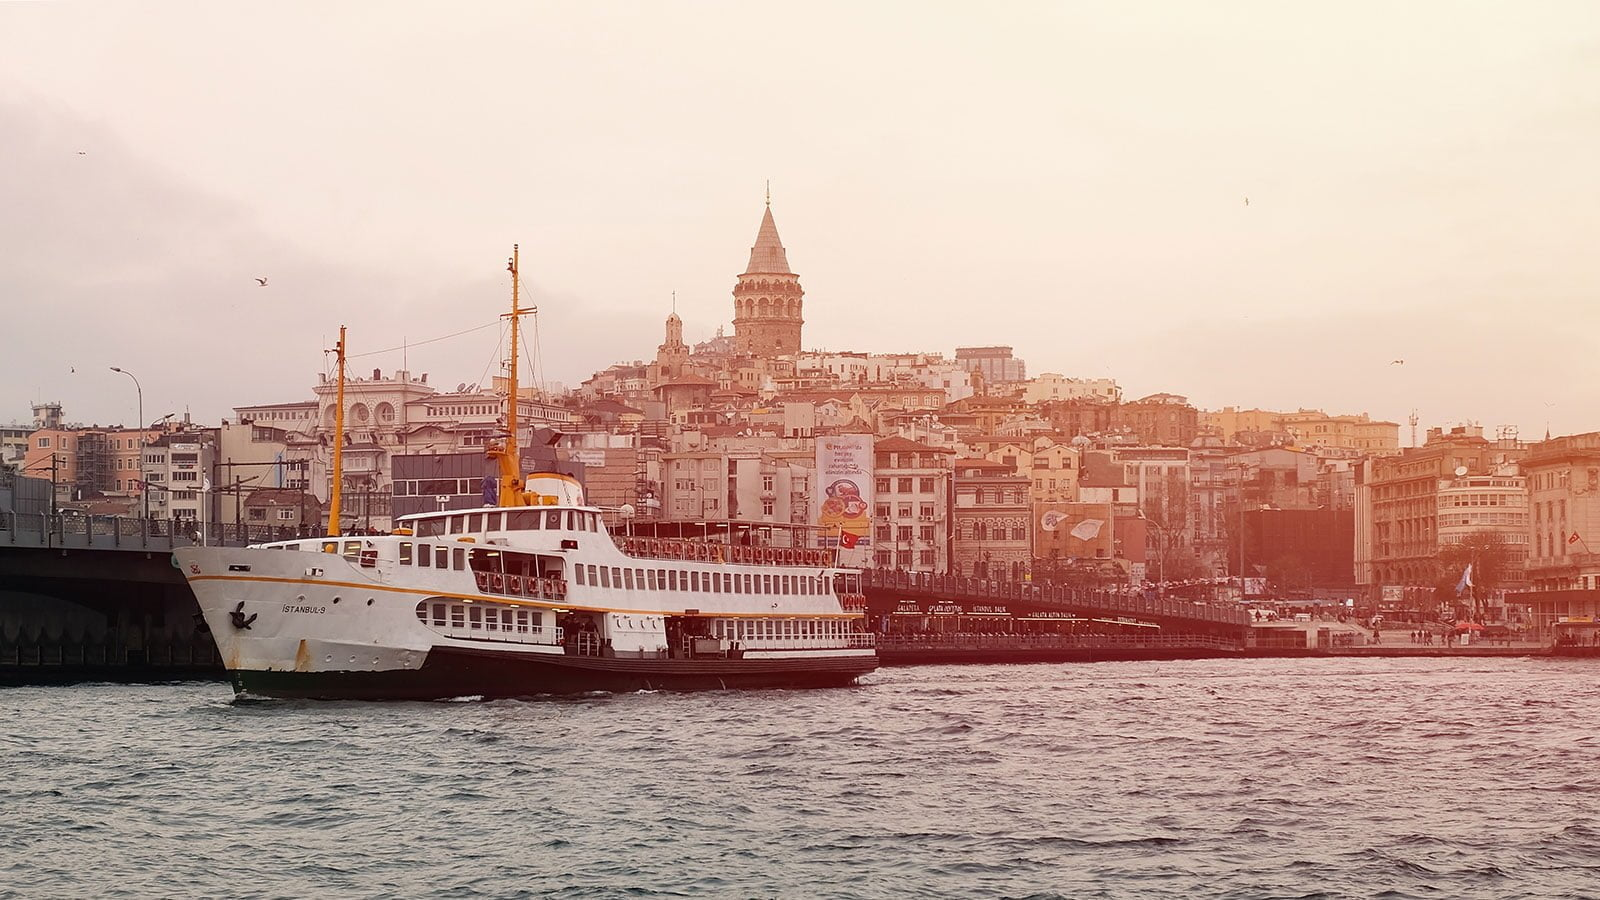 Istanbul ferry and Galata Tower. Photo: Emre Gencer/Unsplash